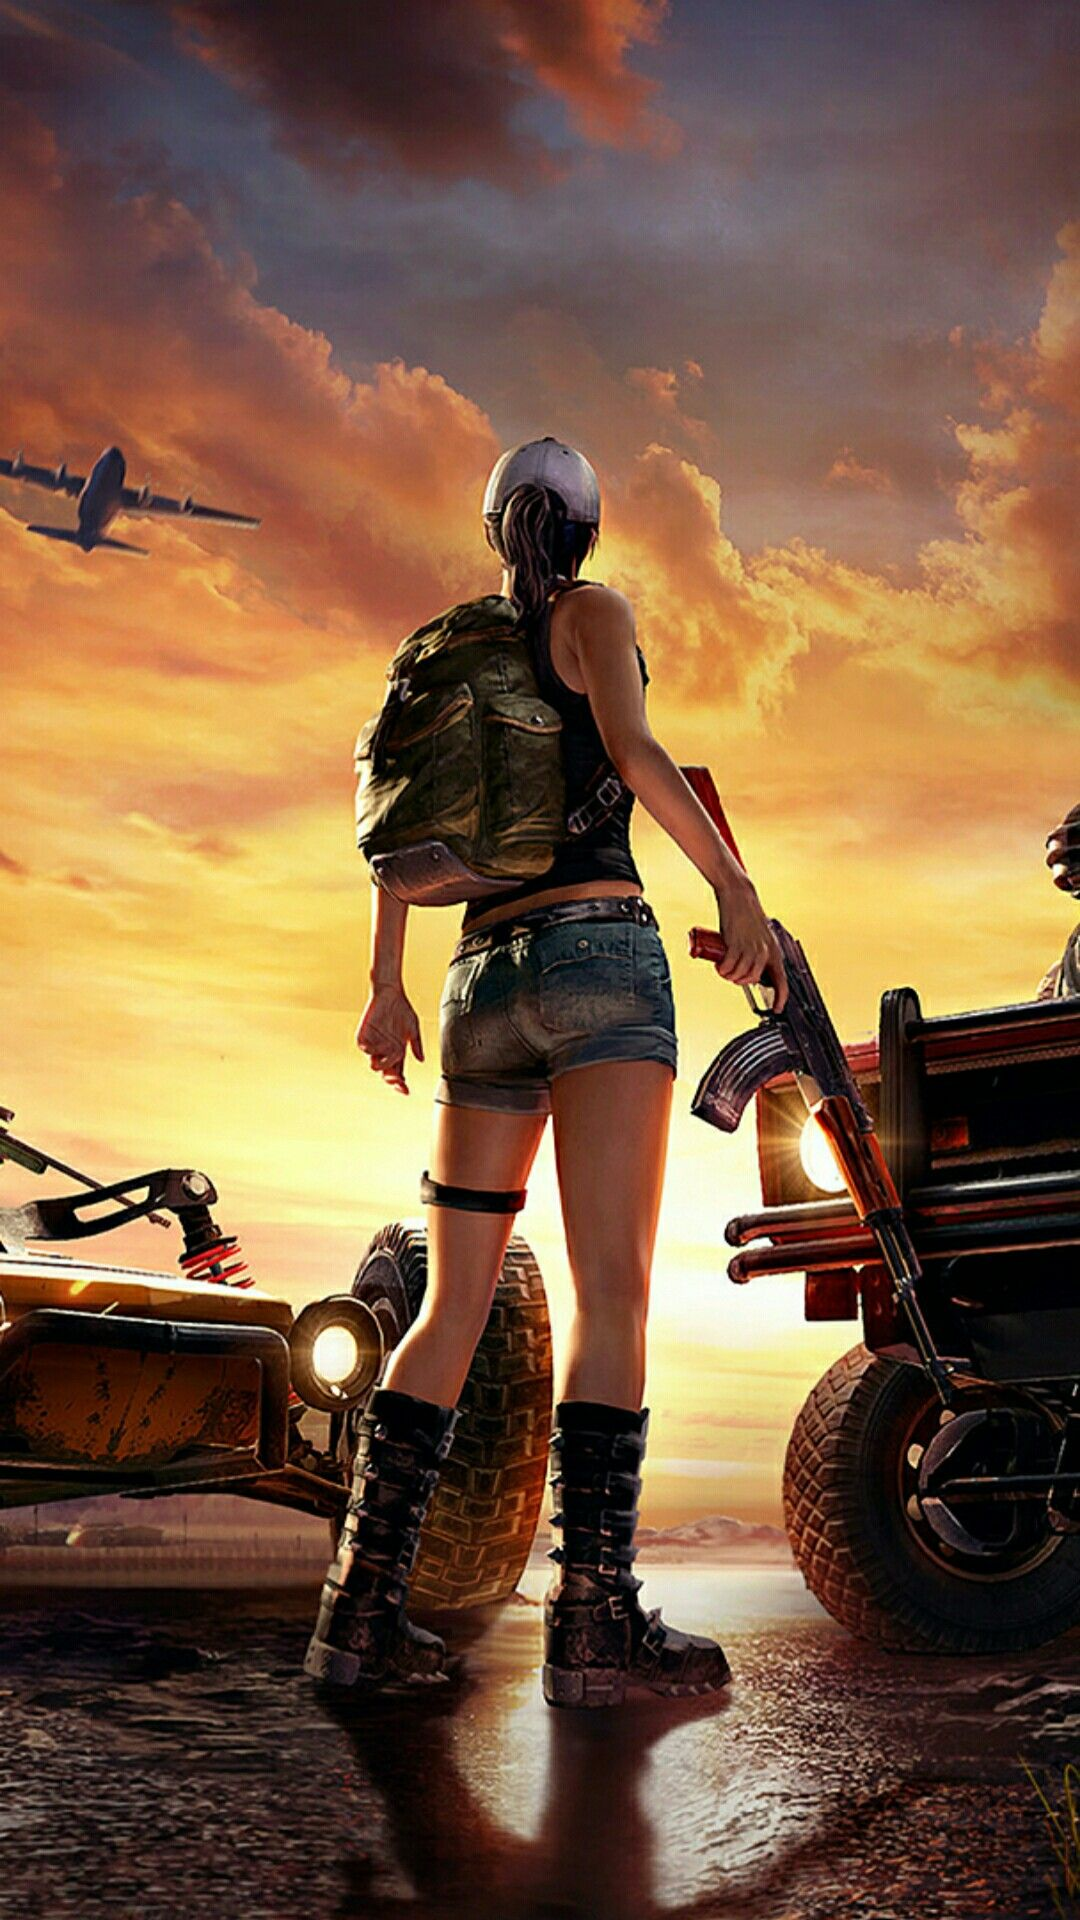 Pin By Arwancups On Pubg Wallpaper Gaming Wallpapers Game